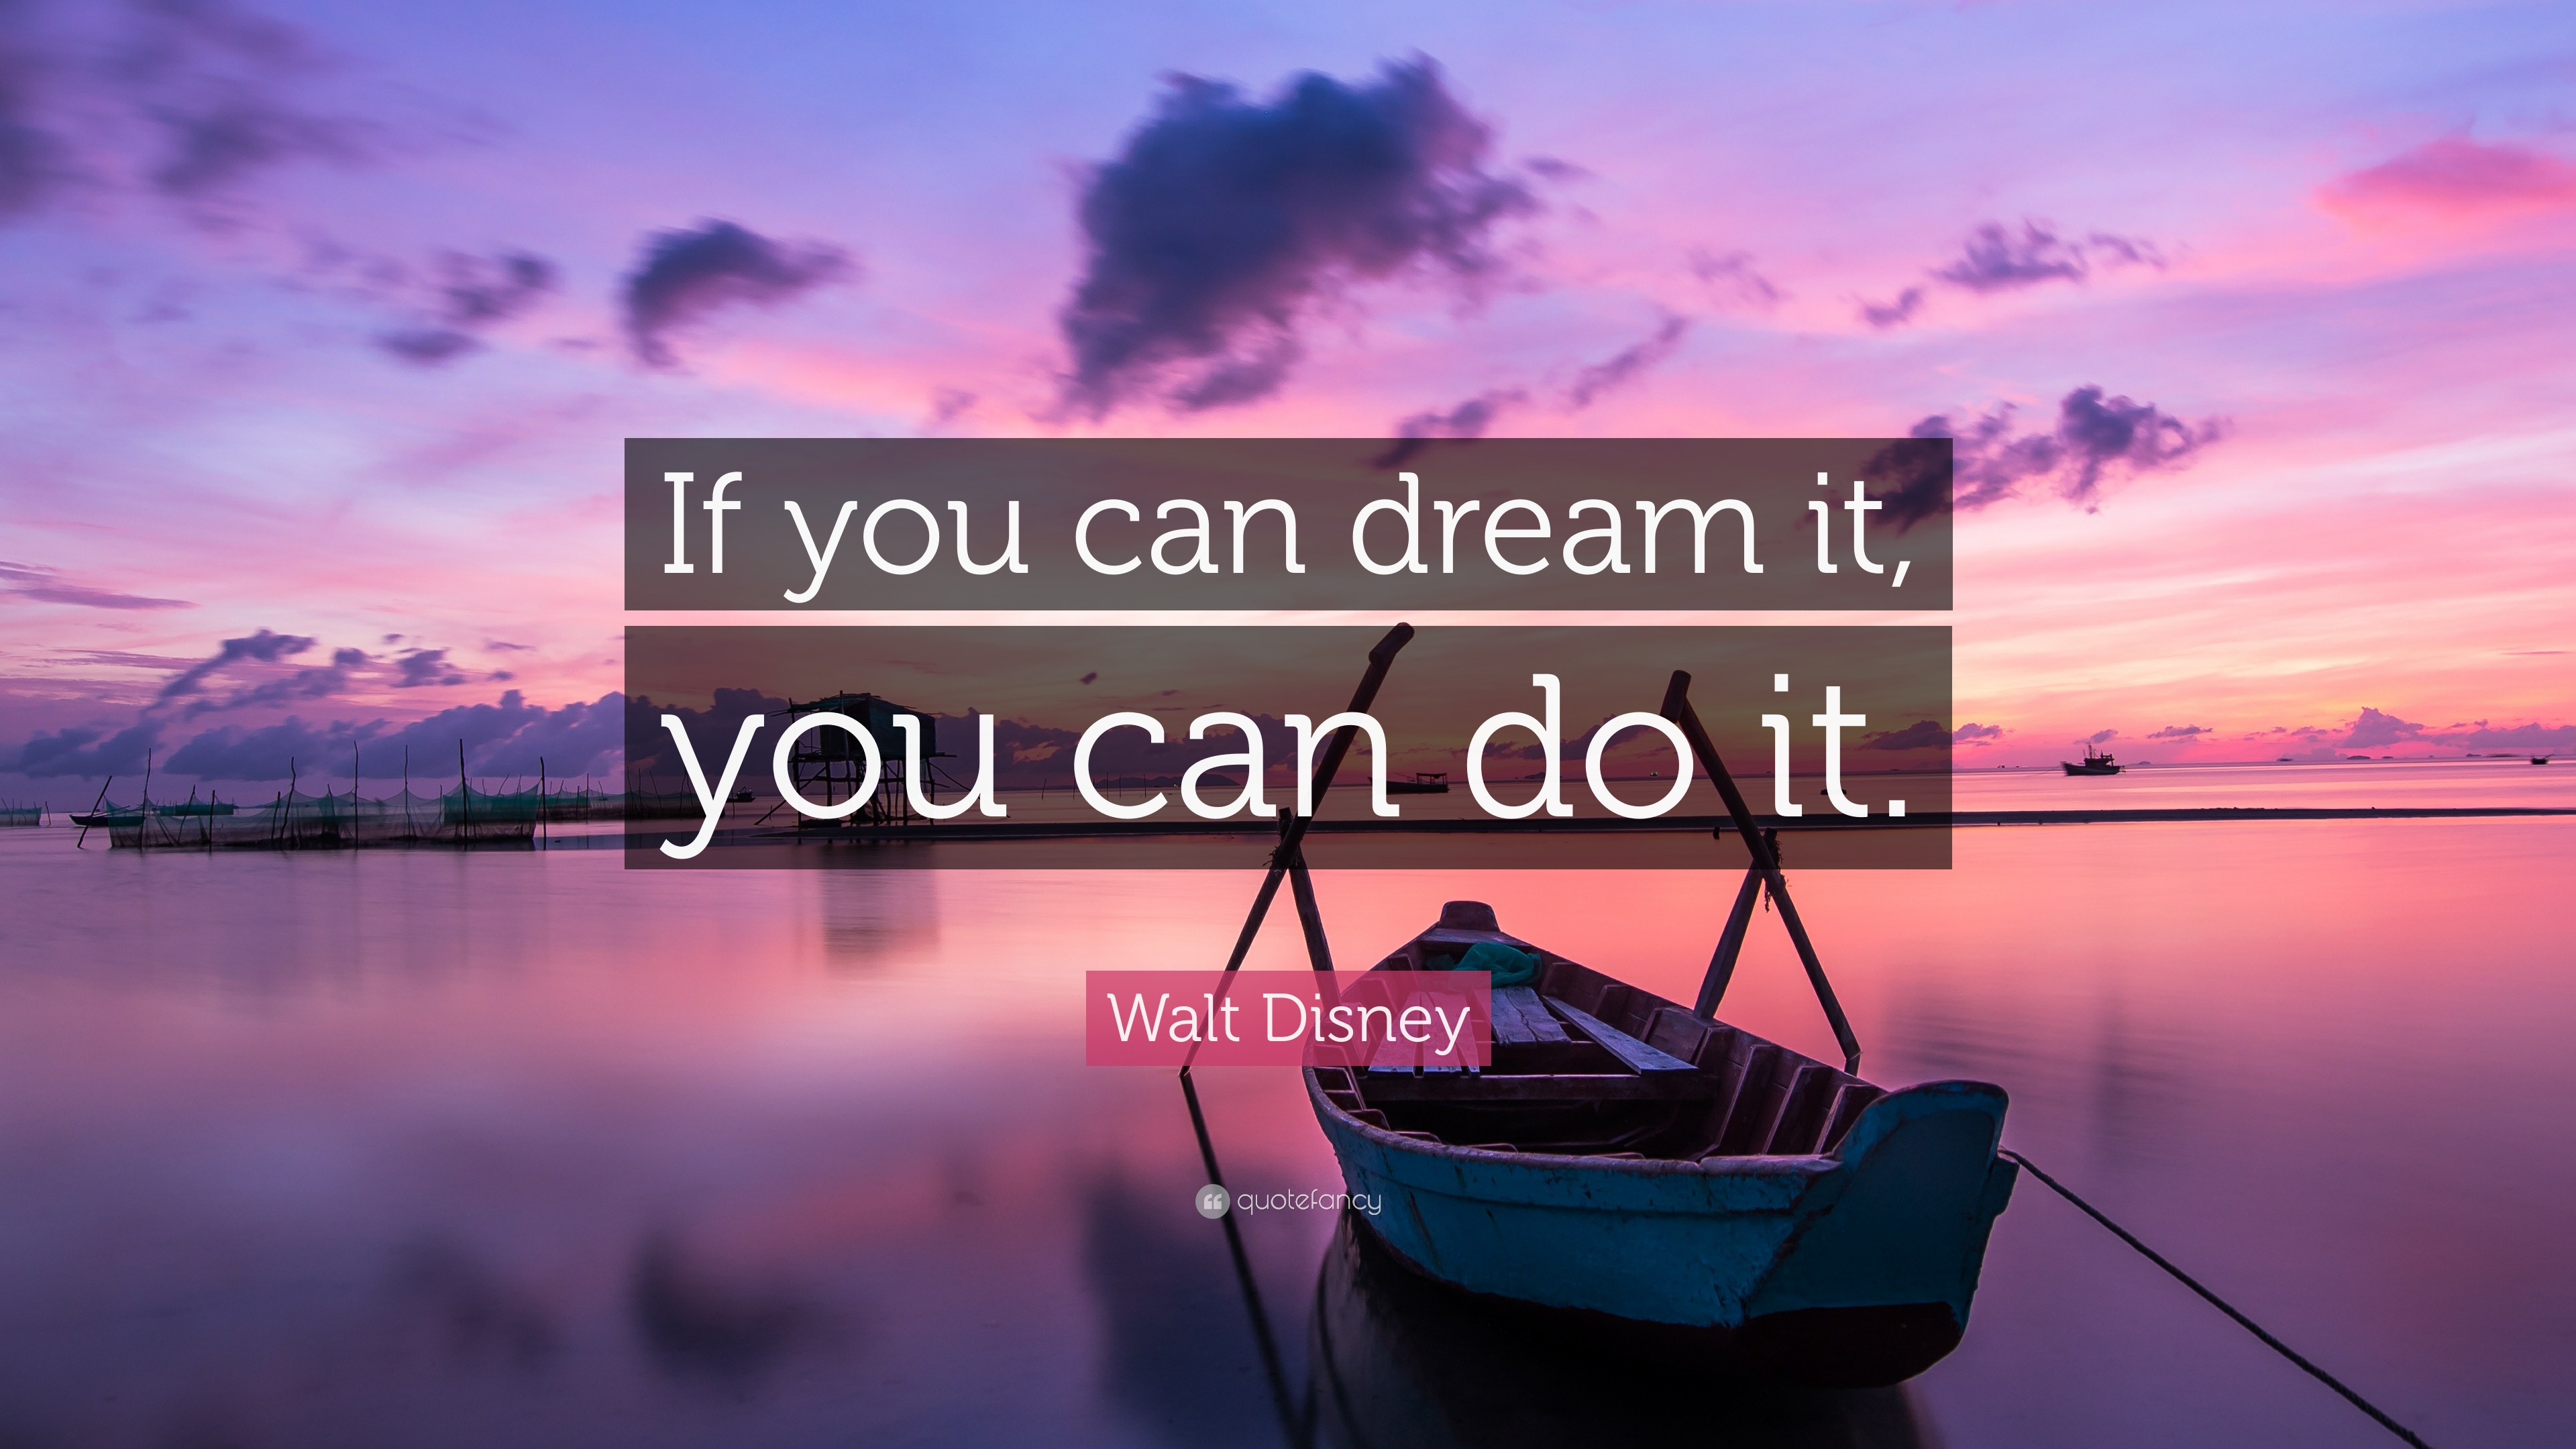 Walt Disney Quote: If you can dream it, you can do it